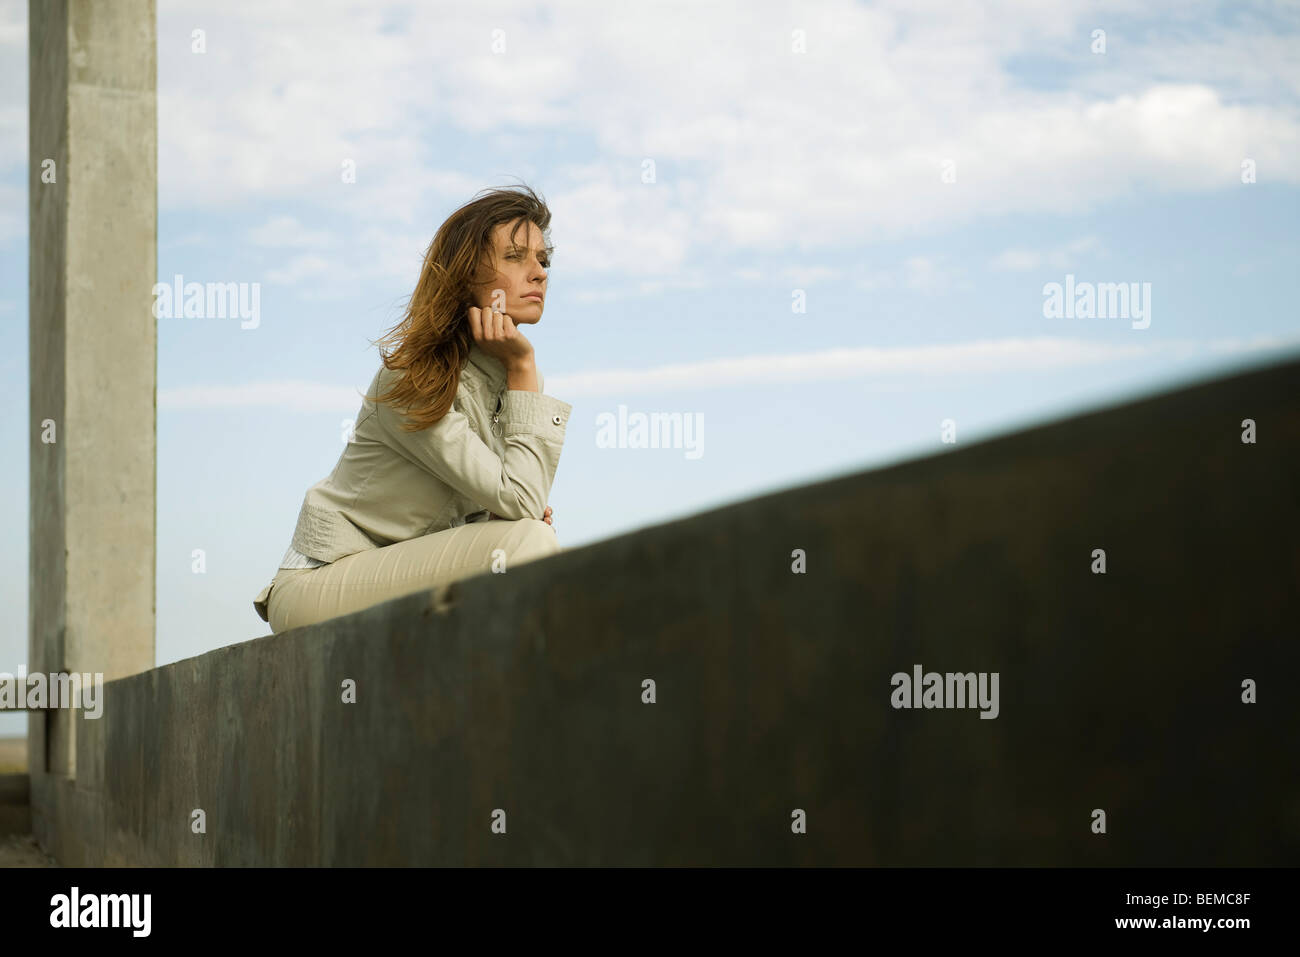 Woman leaning on elbow contemplatively looking away - Stock Image